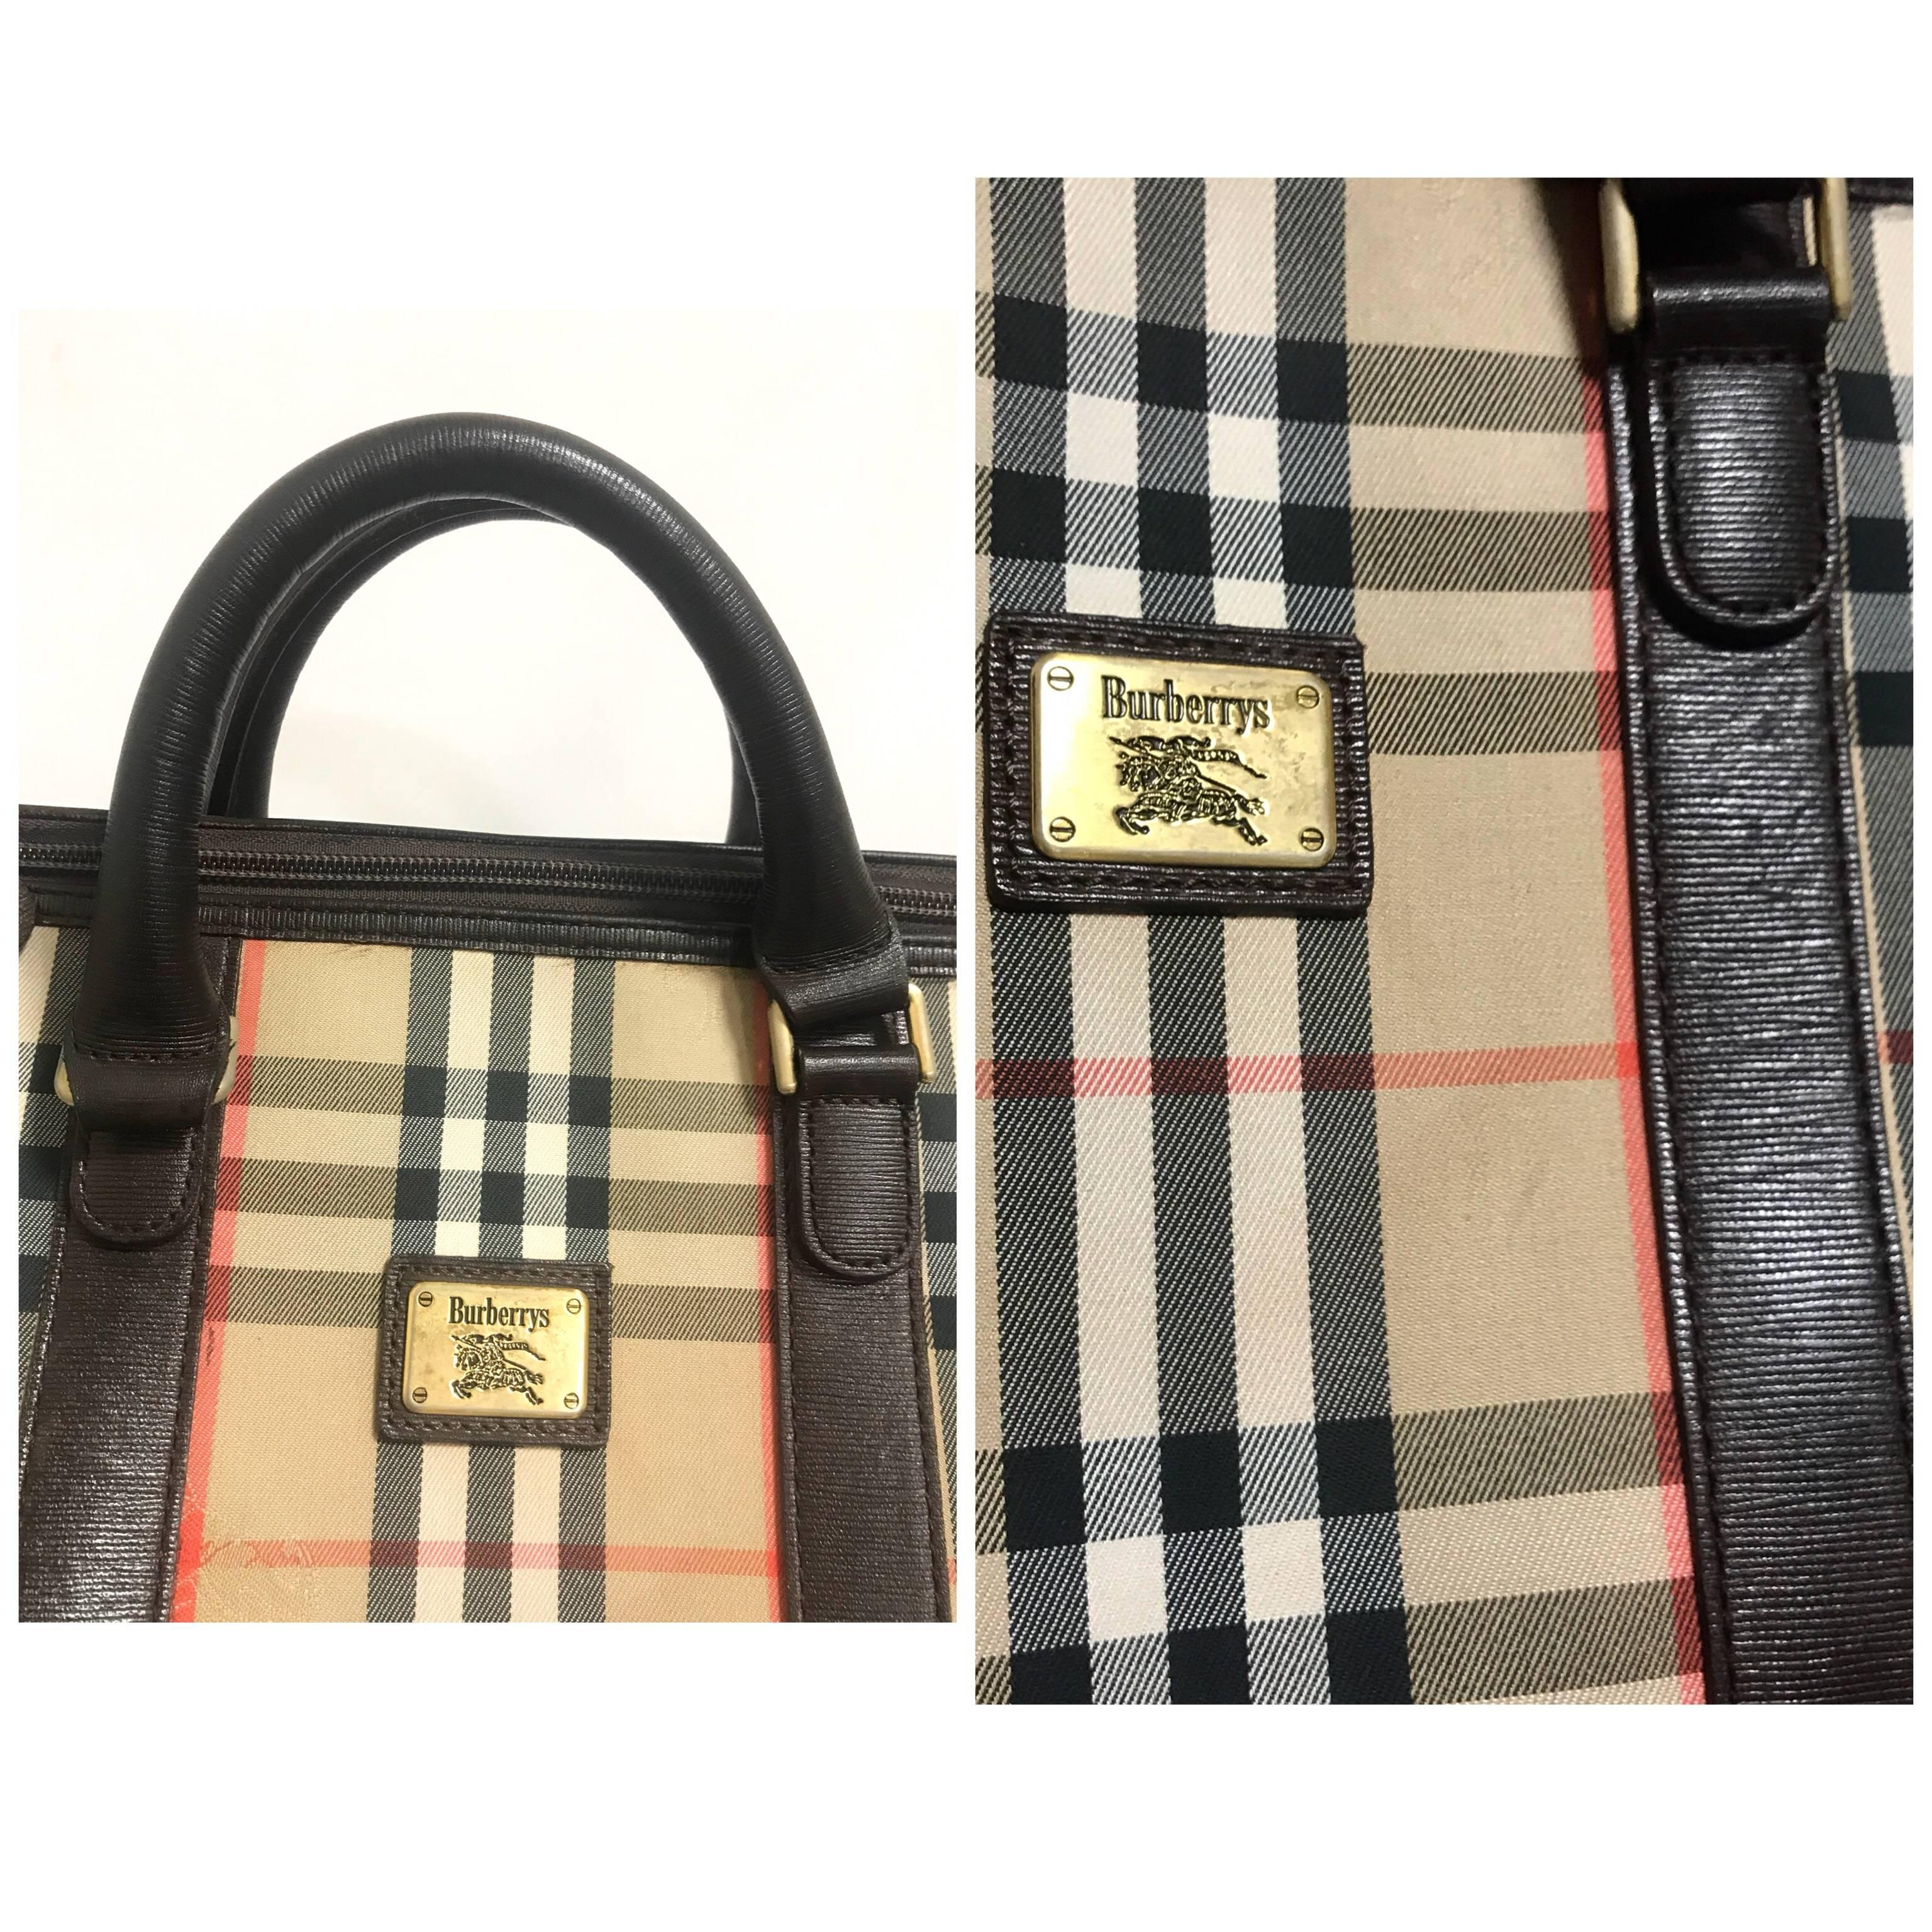 1stdibs Vintage Burberry Classic Beige And Brown Nova Check Handbag. Unisex Purse zHQRsO